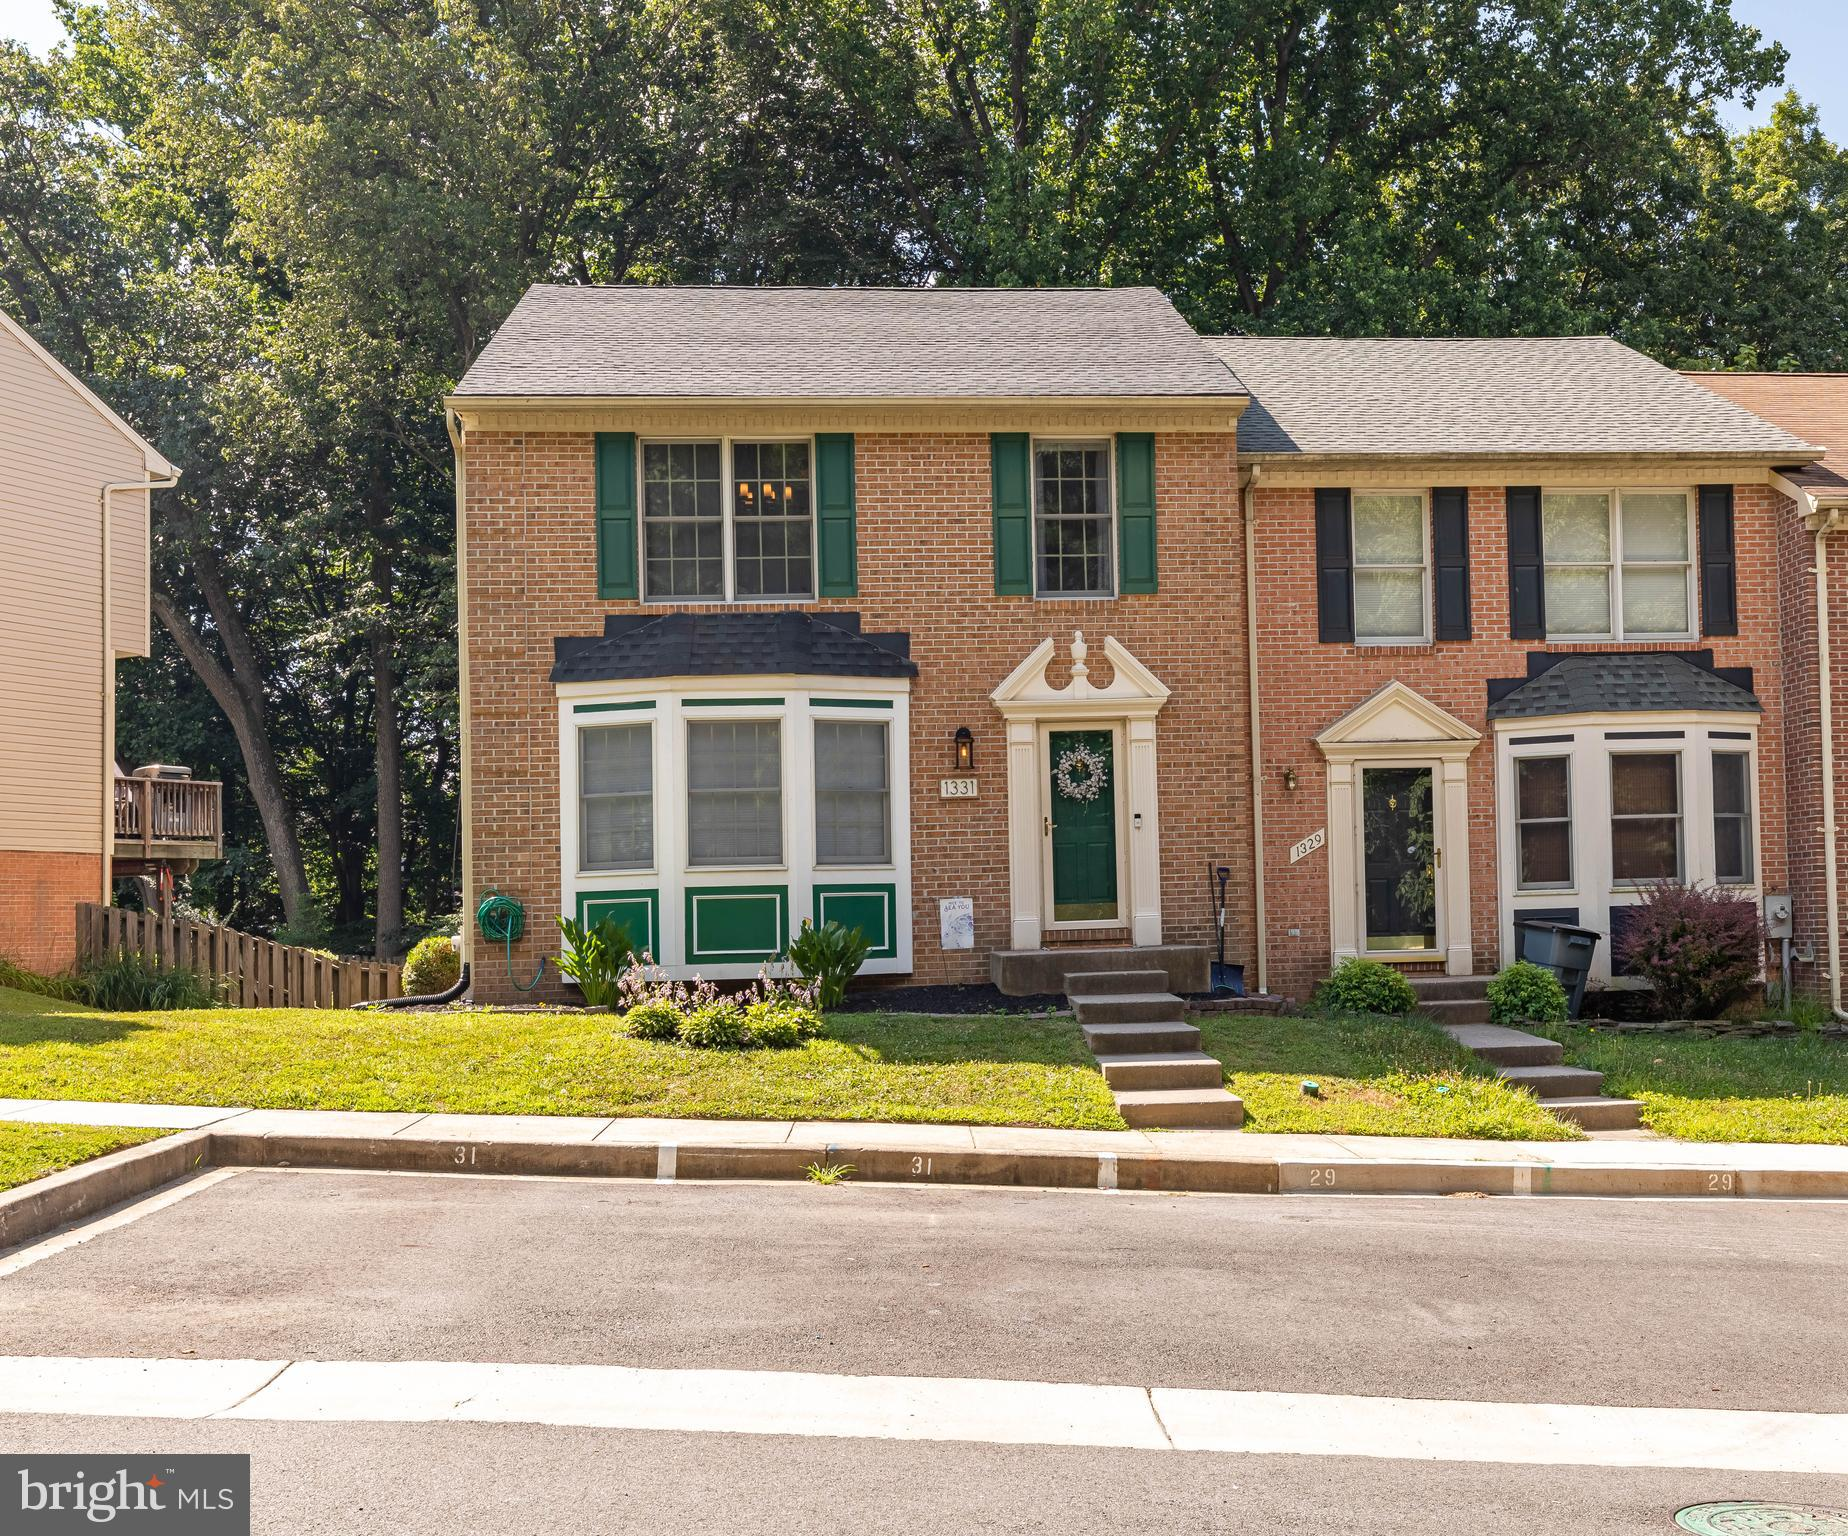 Beautiful brick, end of group townhome in Foxborough Farms of Bel Air. Spacious and stunning, this h